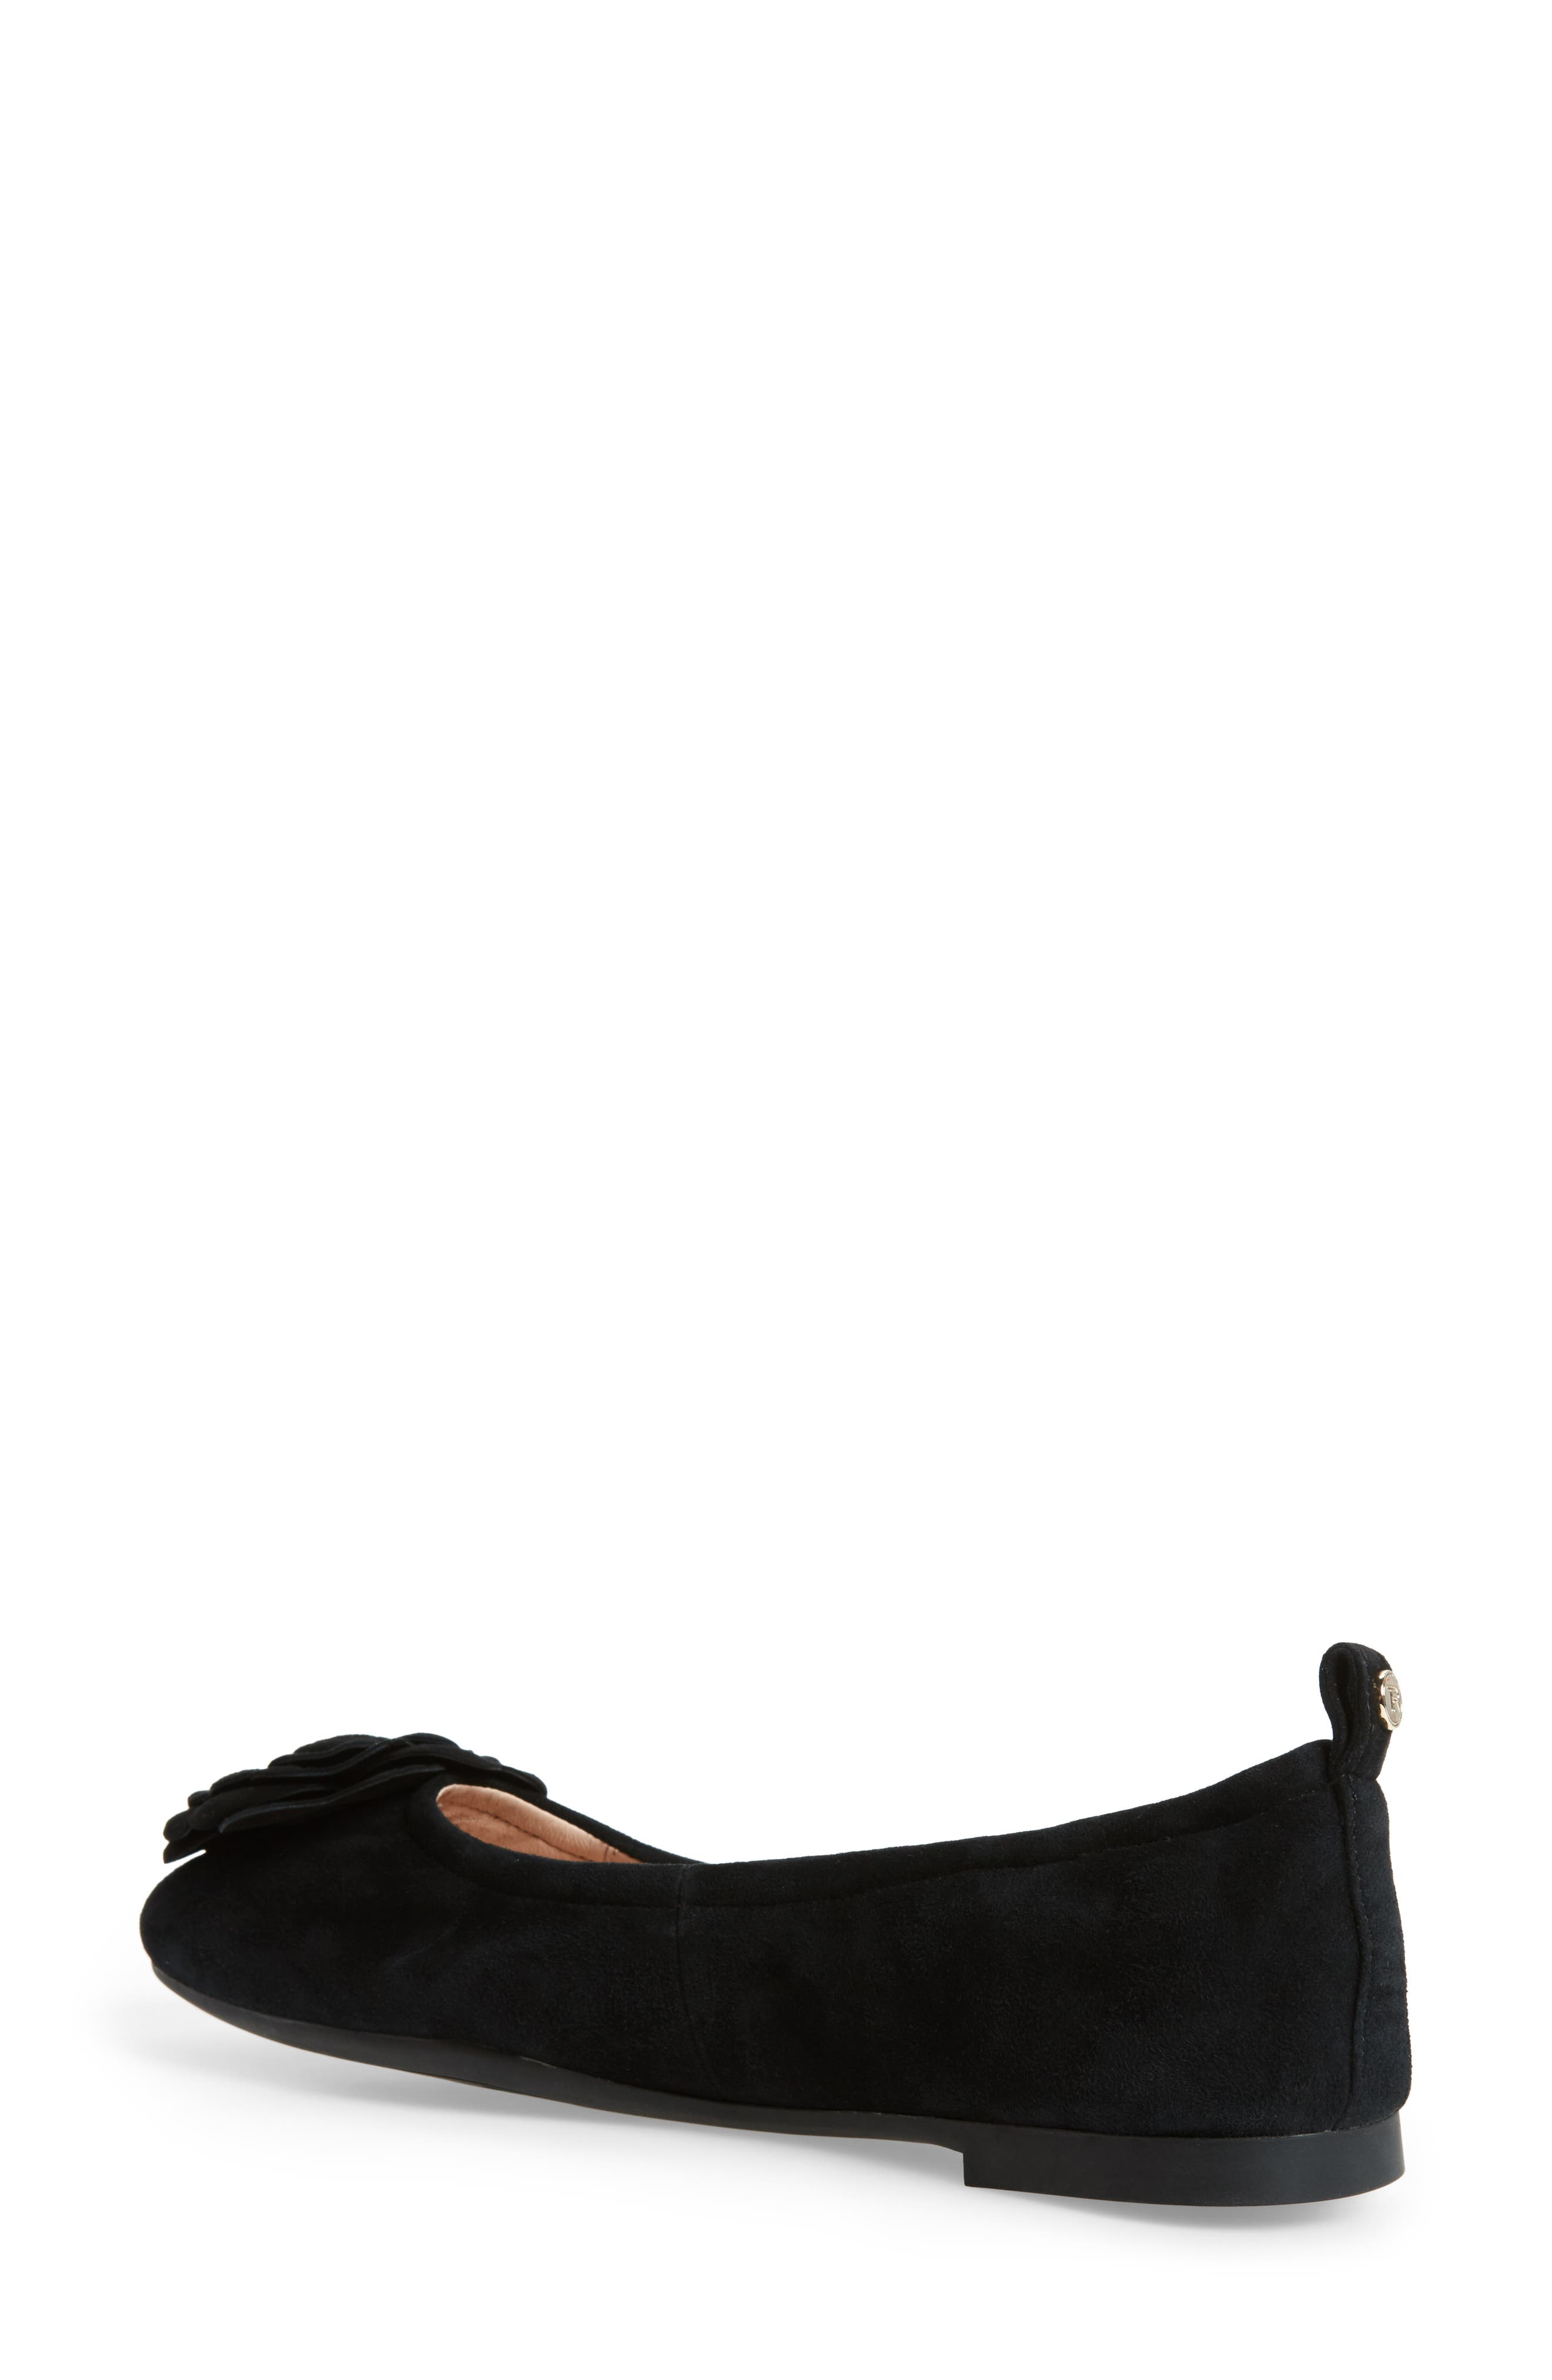 TARYN ROSE, Rosalyn Ballet Flat, Alternate thumbnail 2, color, BLACK SUEDE